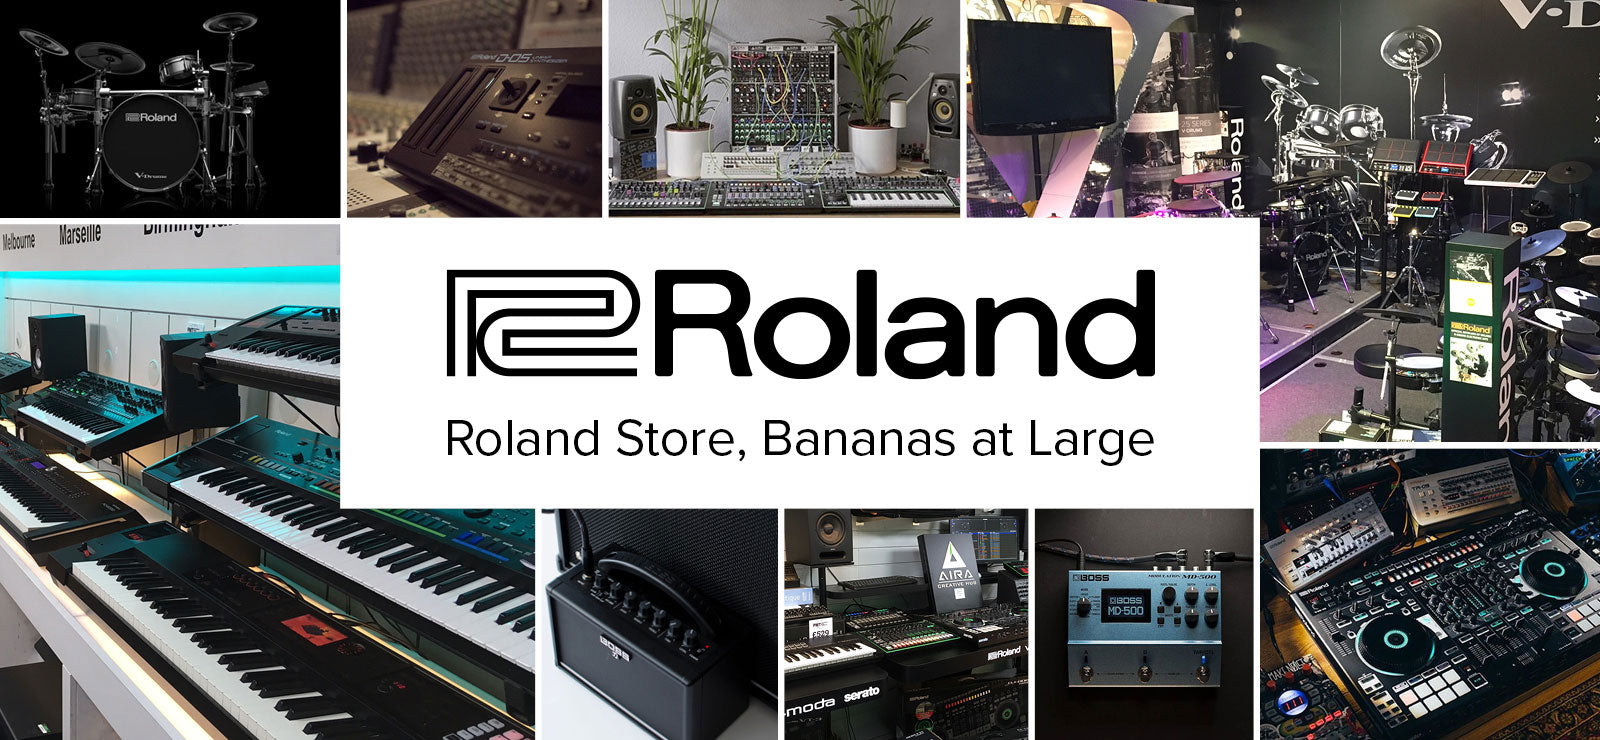 THE ROLAND STORE -  Bananas At Large